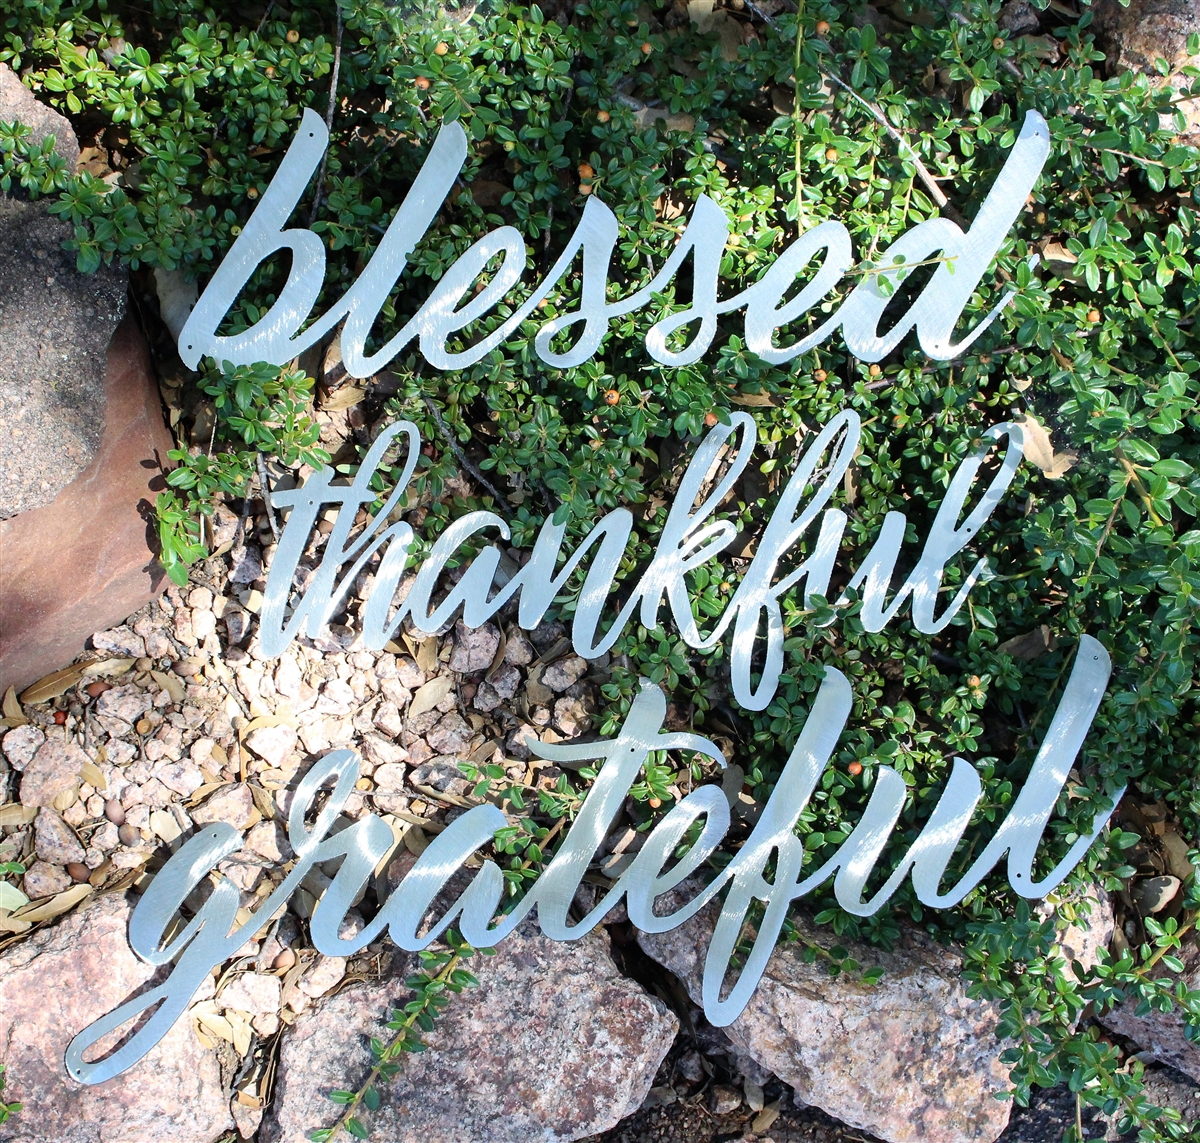 Thankful, Grateful & Blessed Metal Wall Art Words Polished Steel Regarding Blessed Steel Wall Decor (View 12 of 30)